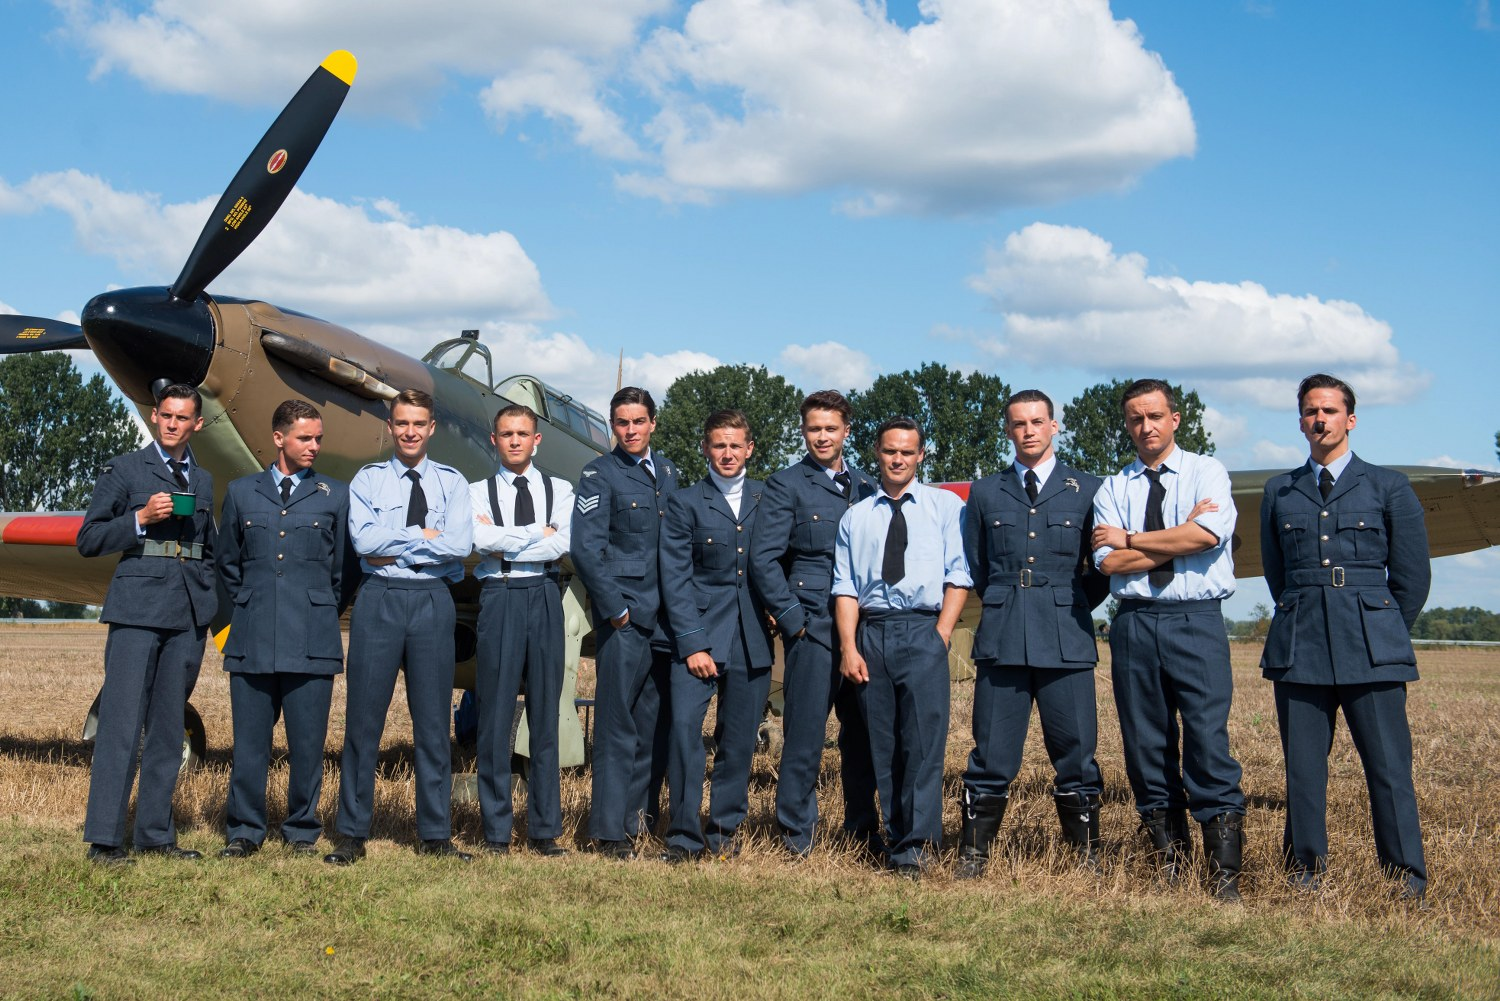 303 Squadron still3   Confusions and Connections